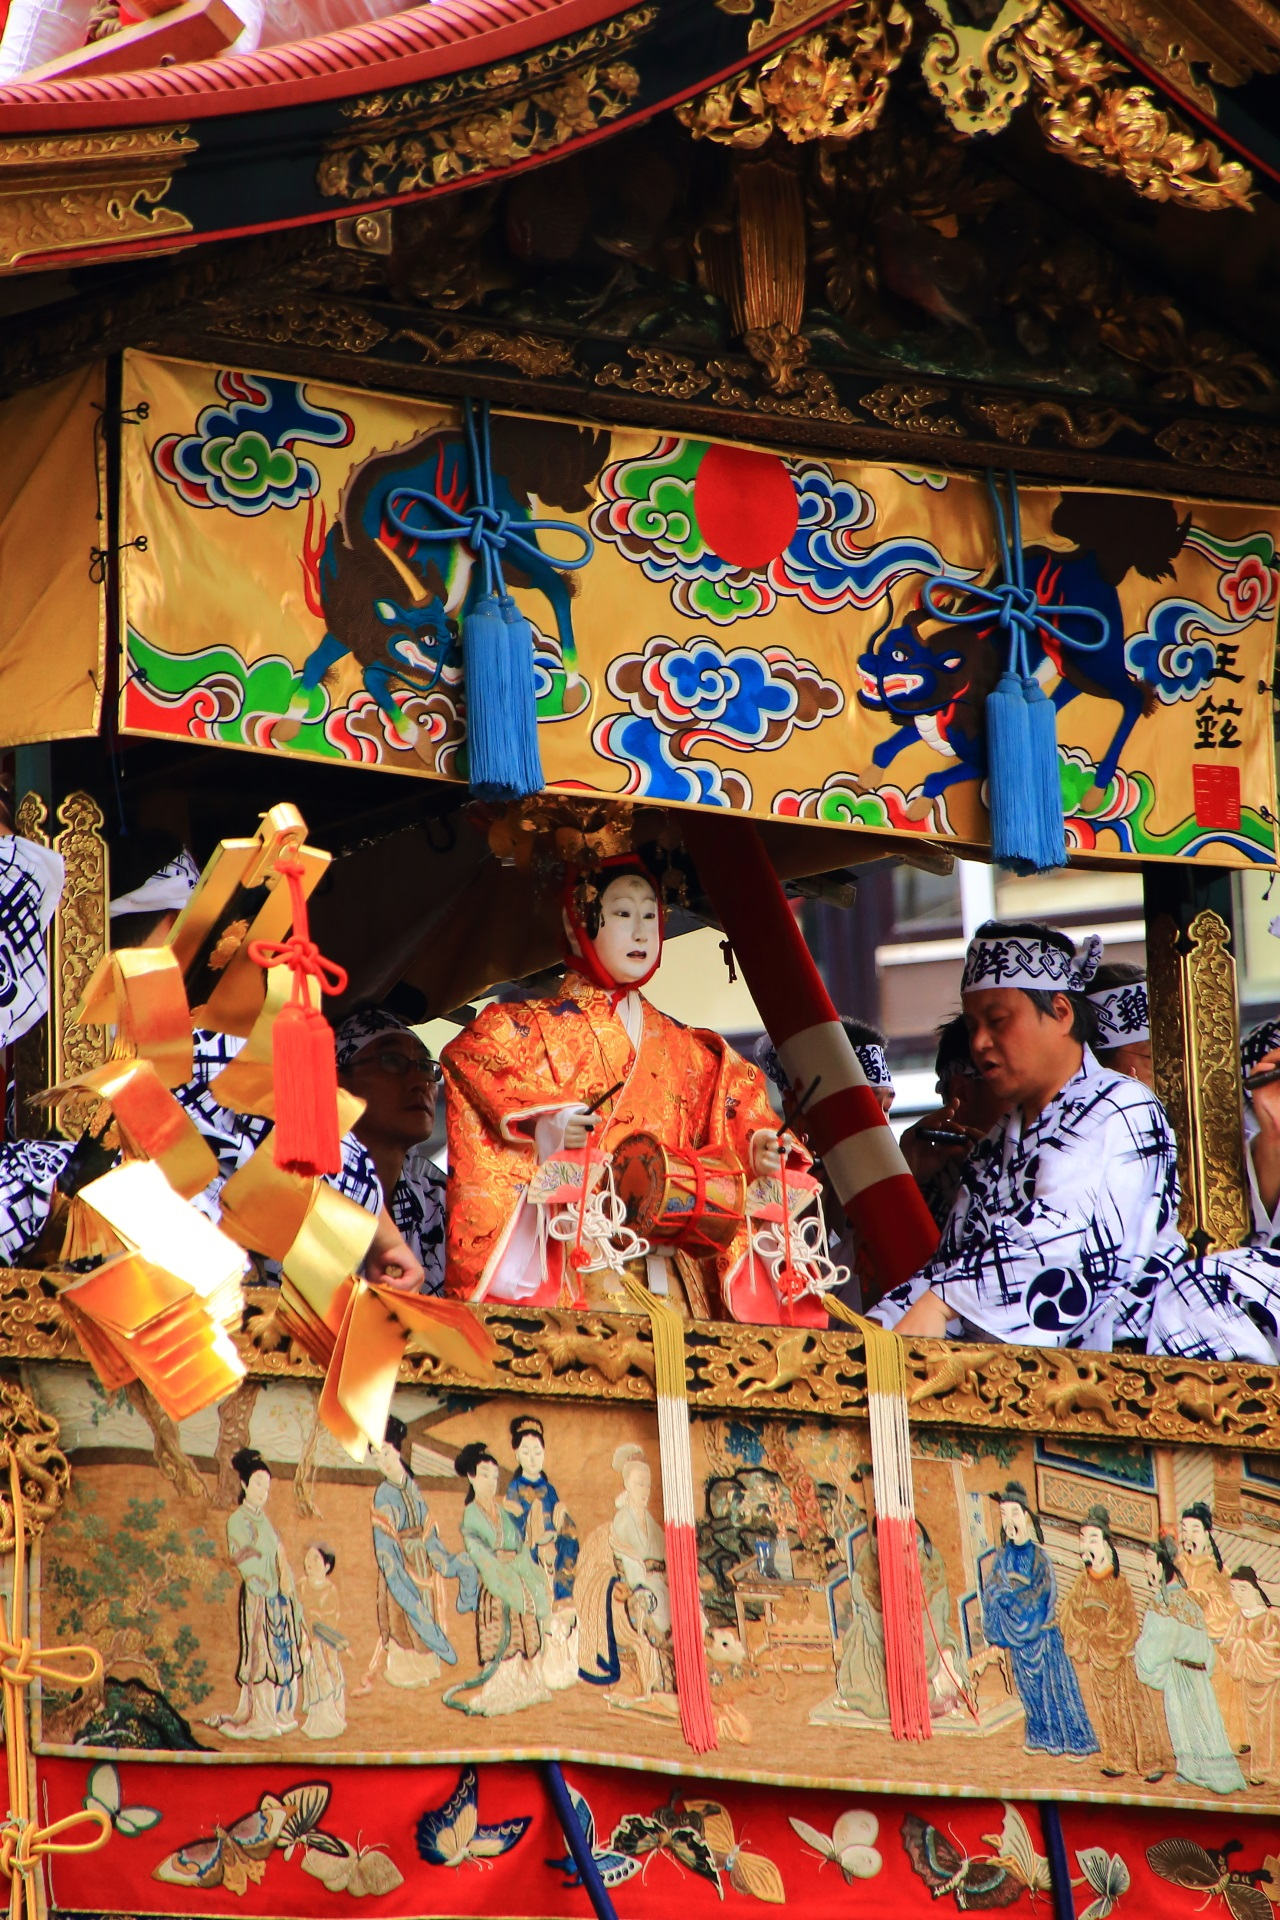 Tori-Hpoko appeared in Kyoto Gion-Matsuri Festival